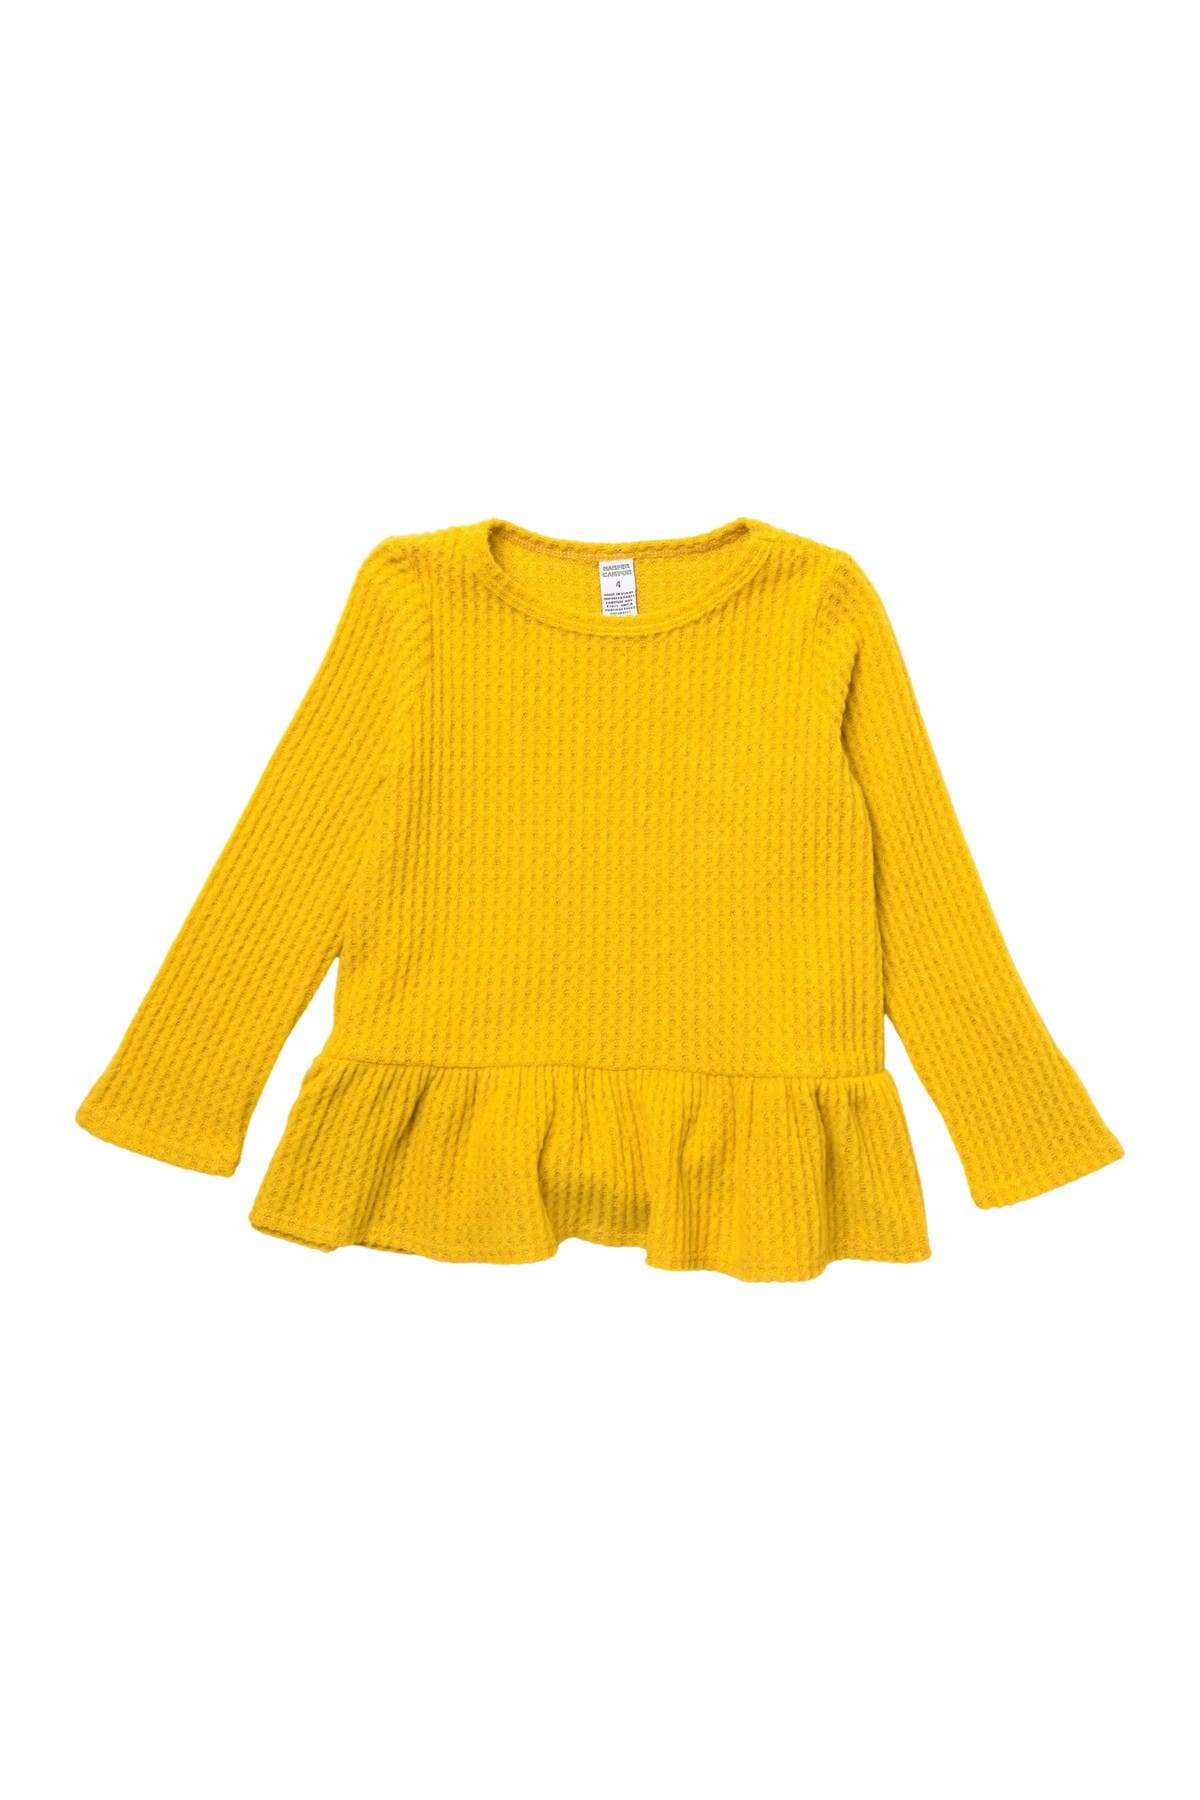 Image of Harper Canyon Cozy Play Top